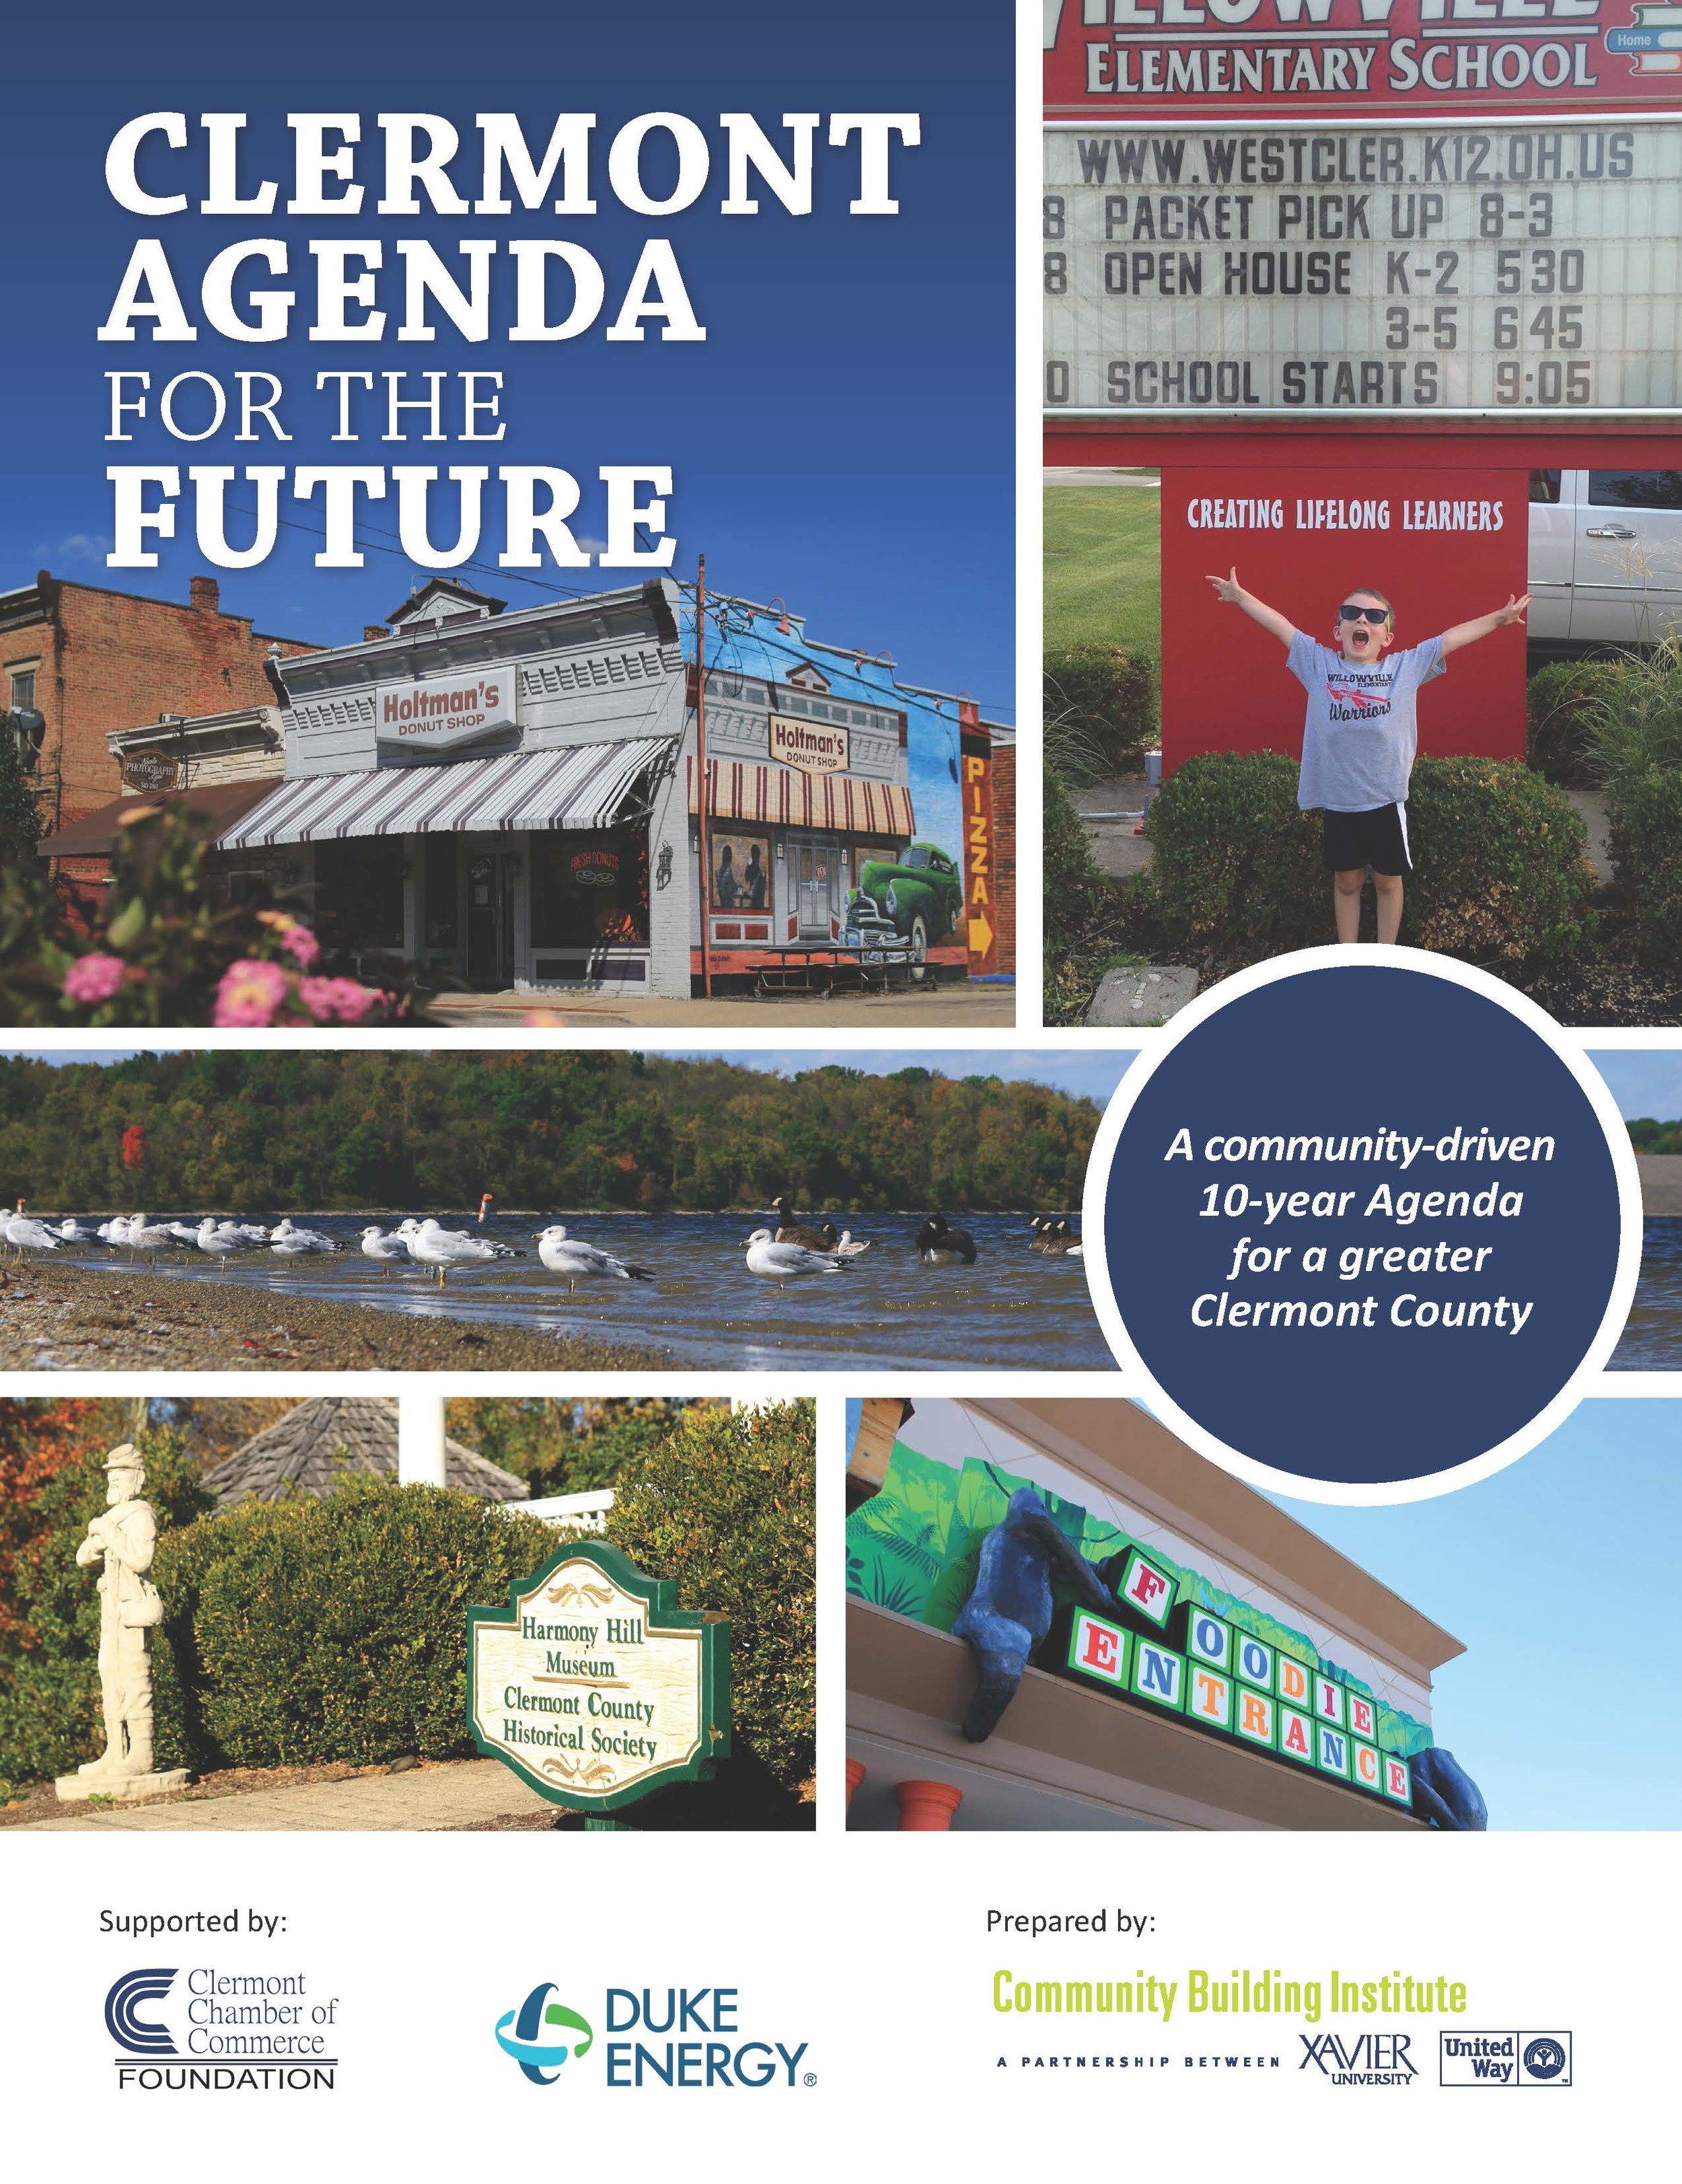 Clermont Agenda for the Future cover image_Page_1.jpg